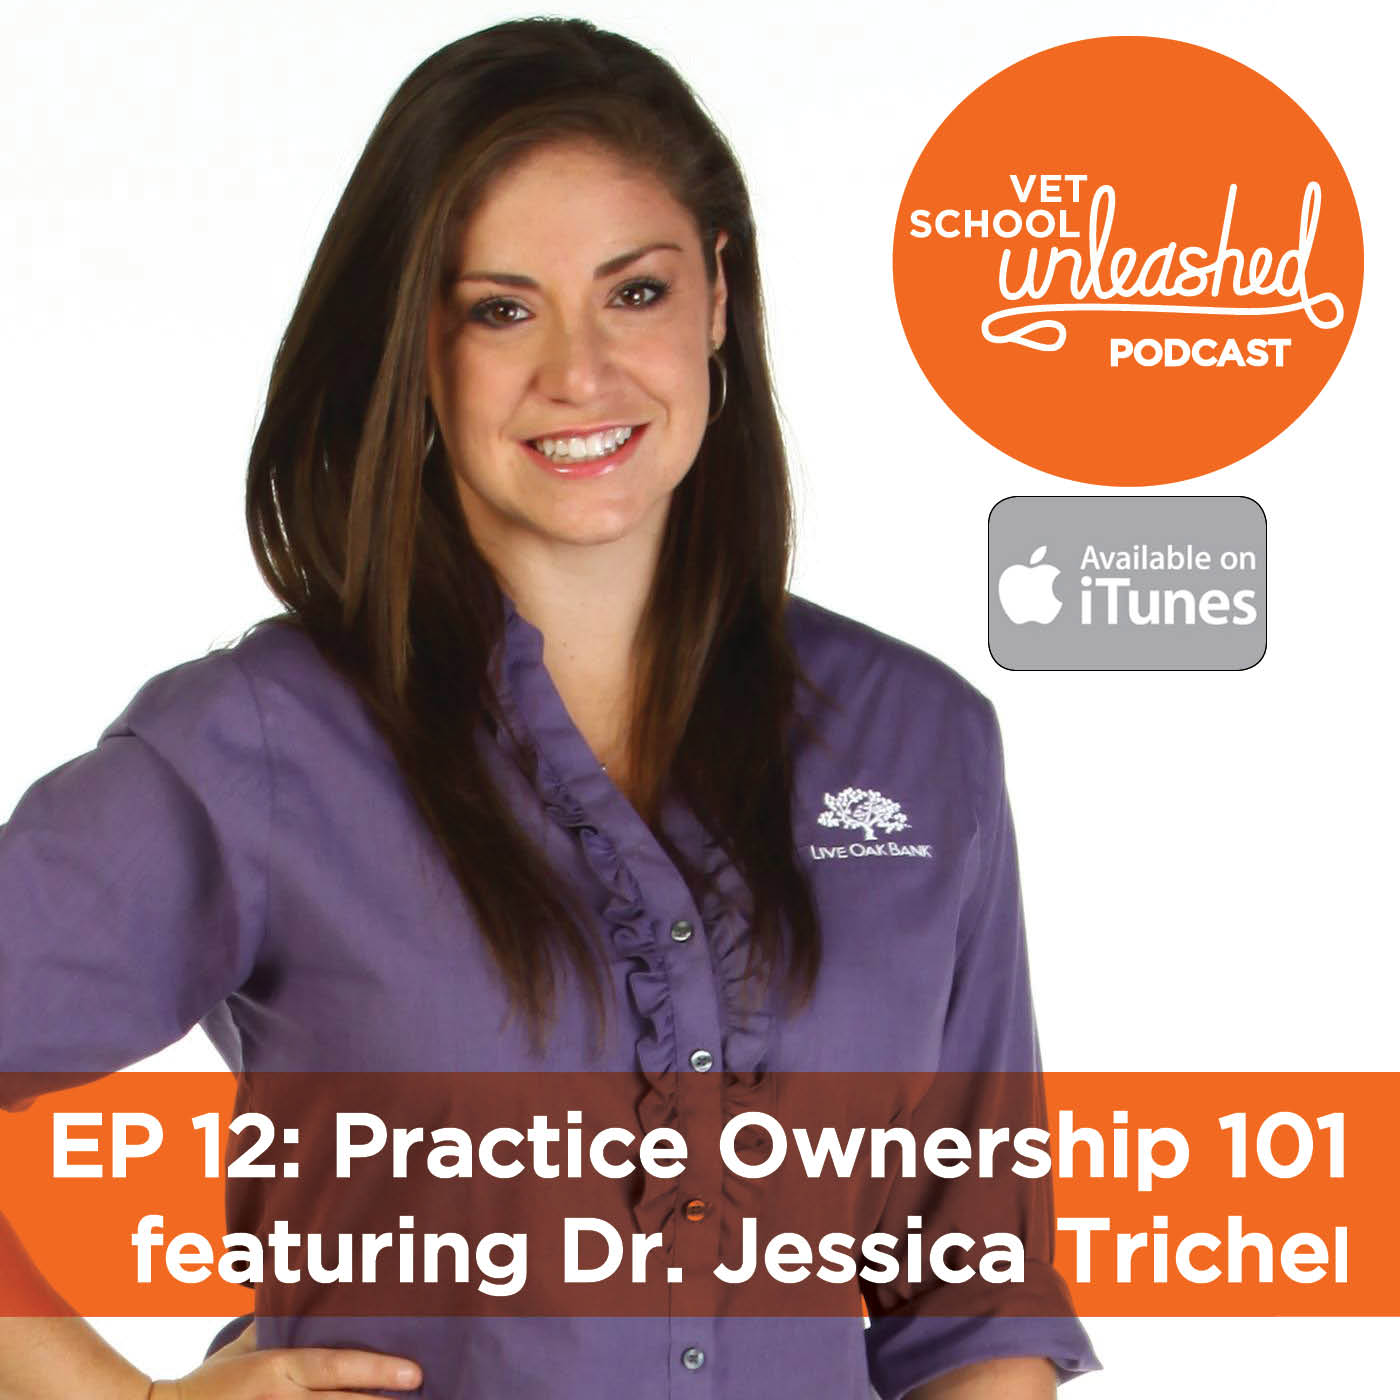 ep-12-jess_trichel_ownership_instagram